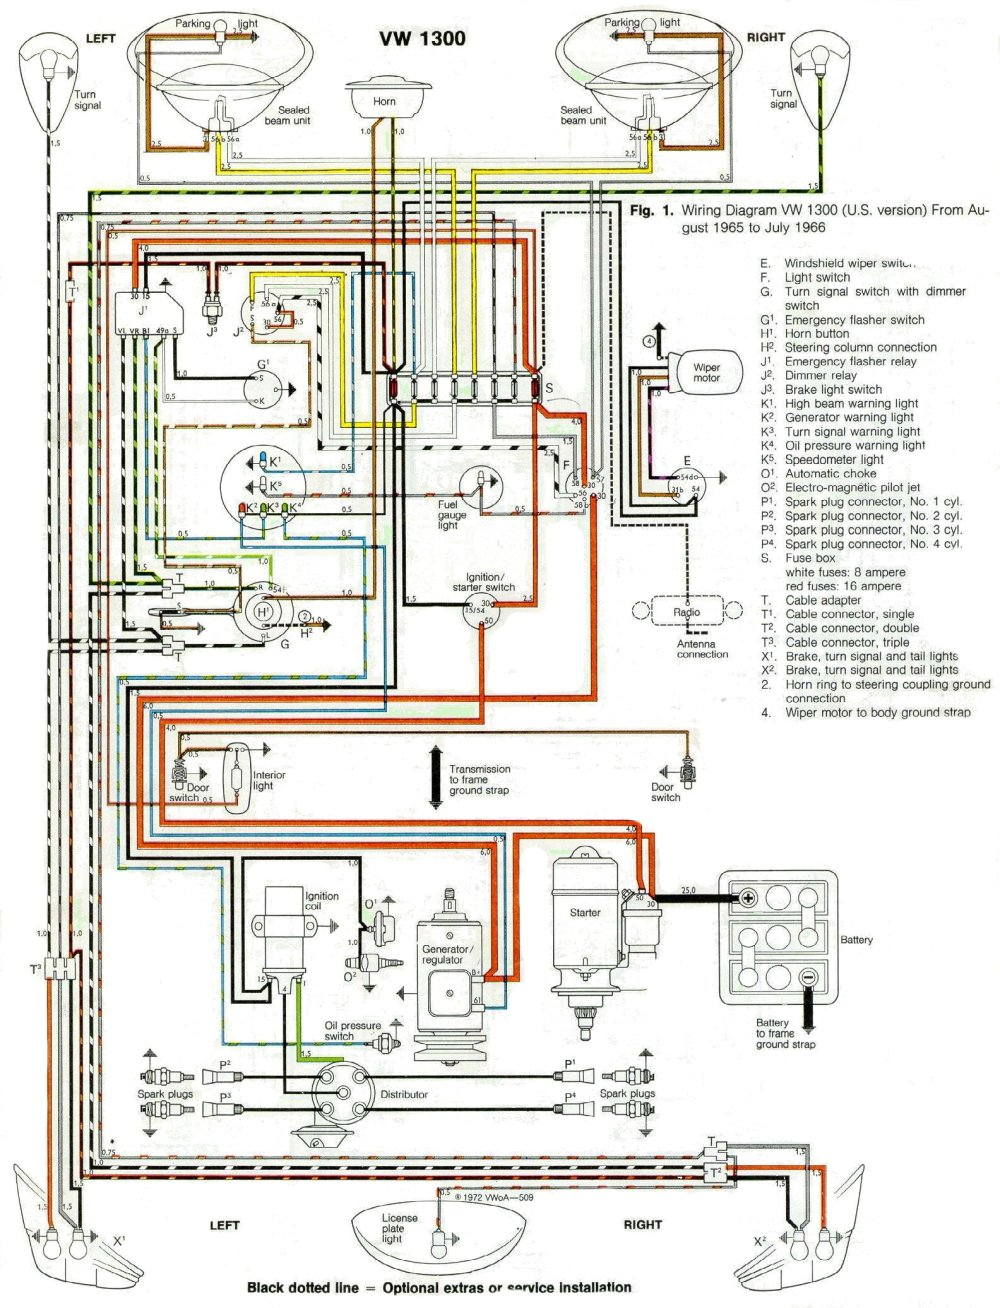 medium resolution of 1966 wiring diagram volkswagen amp meter wiring diagram volkswagen wiring diagram